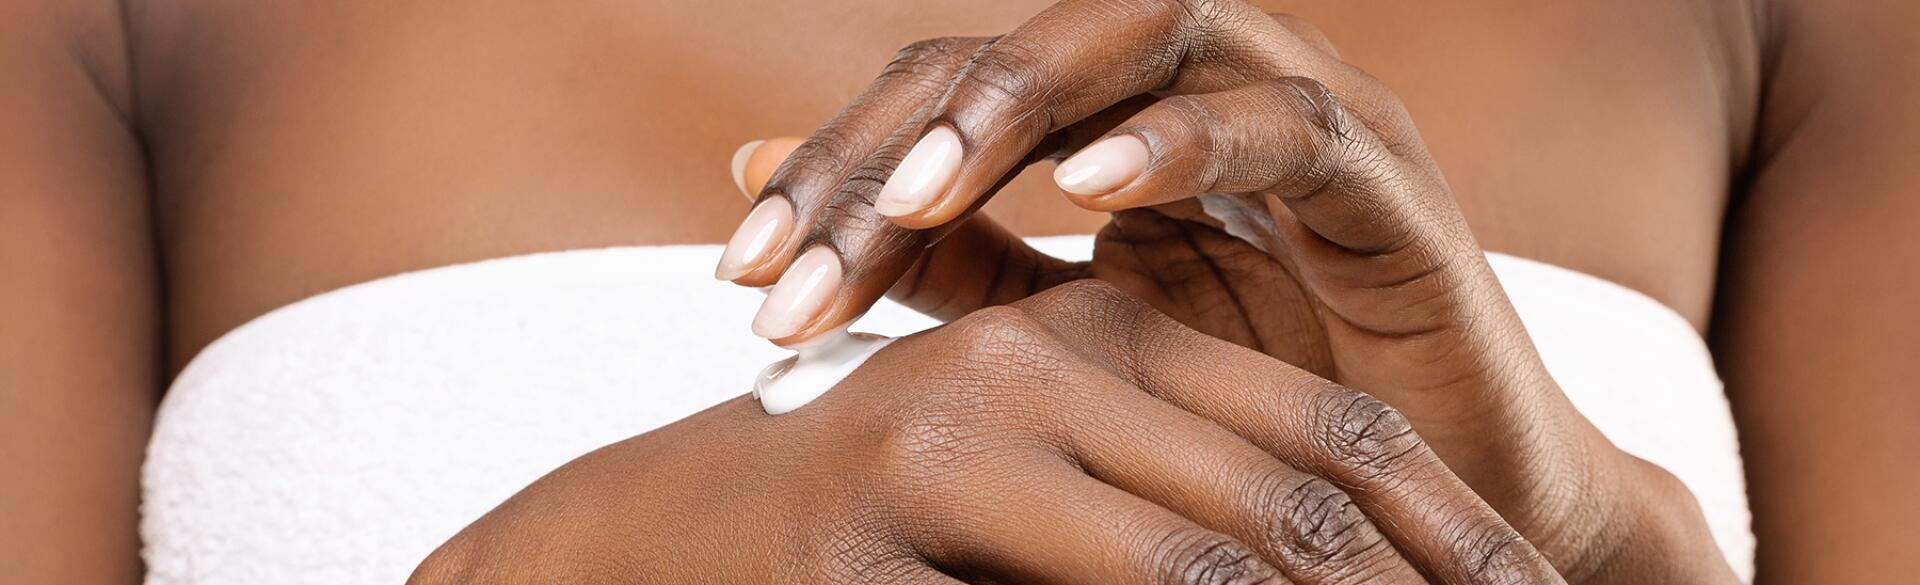 image_of_hands_applying_lotion_GettyImages-1192085595_1800